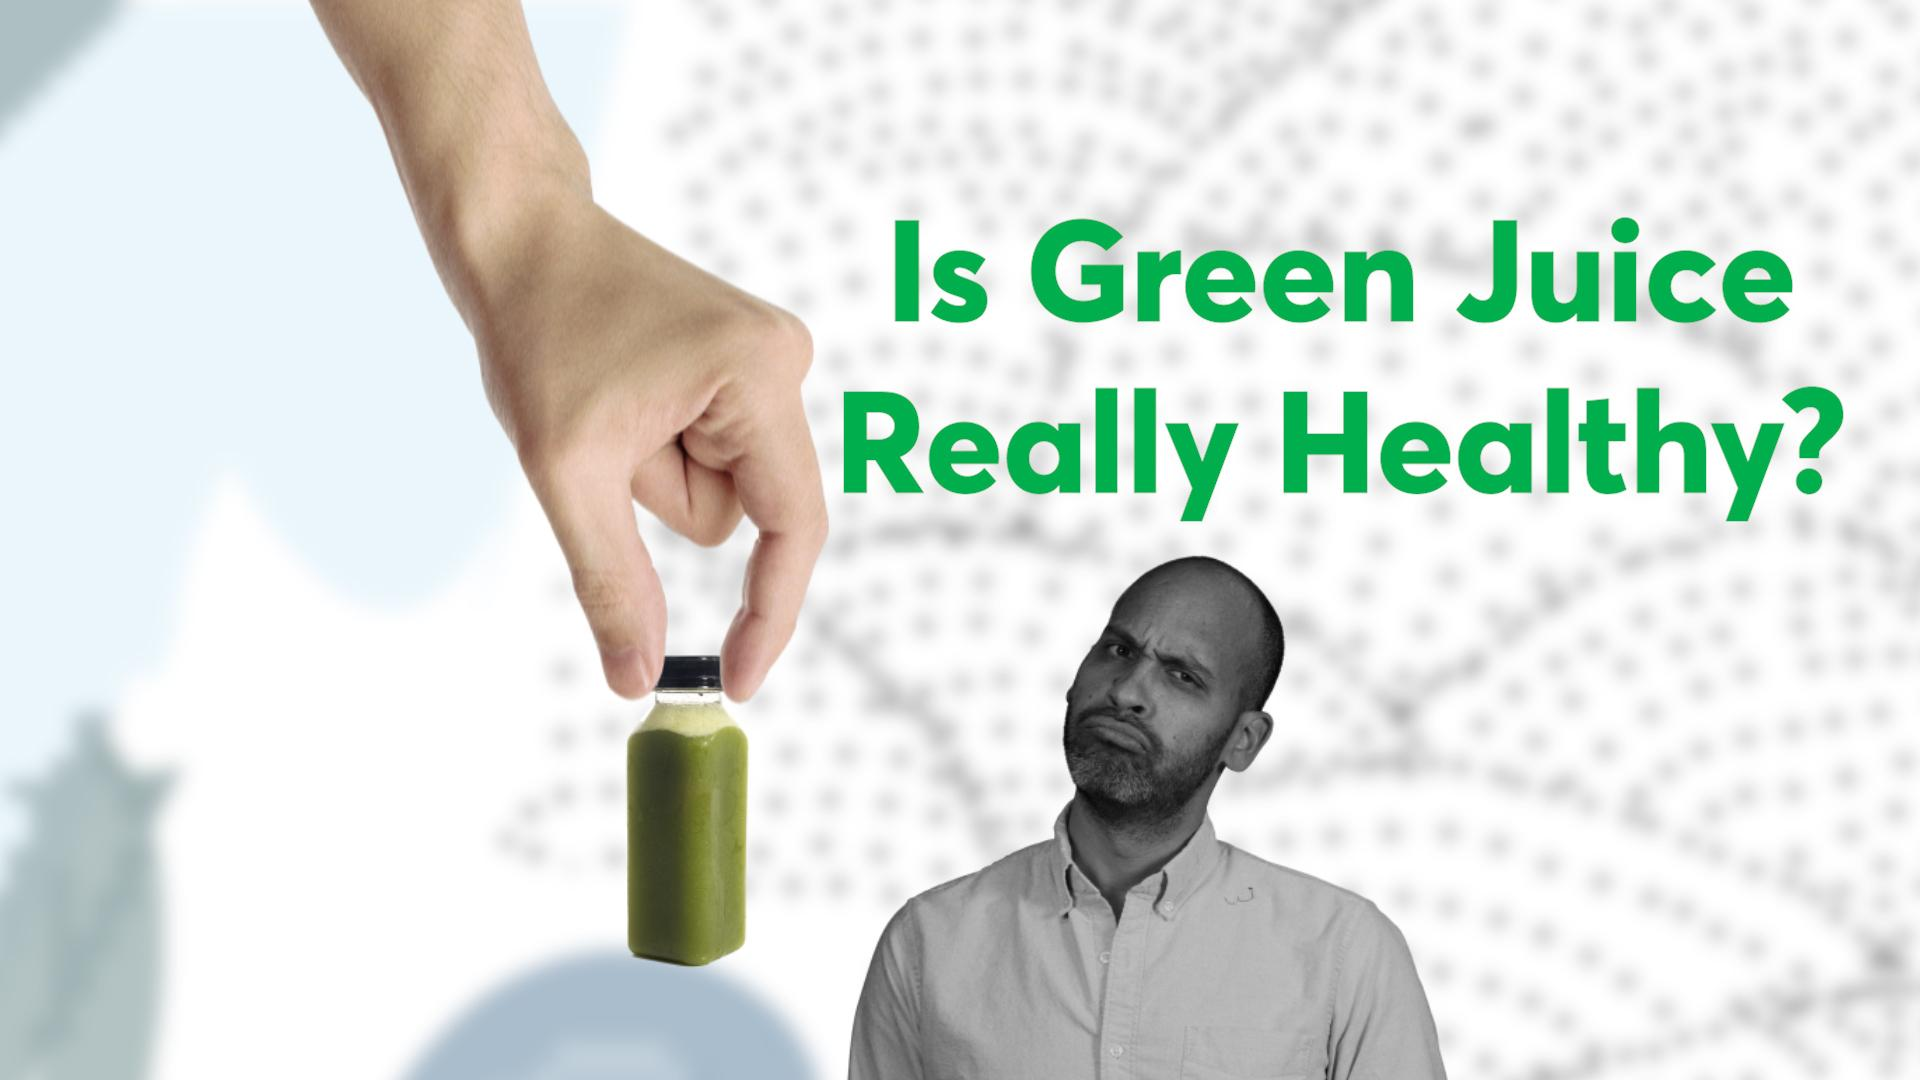 Green Juice: Not as Healthy as You Think - Consumer Reports